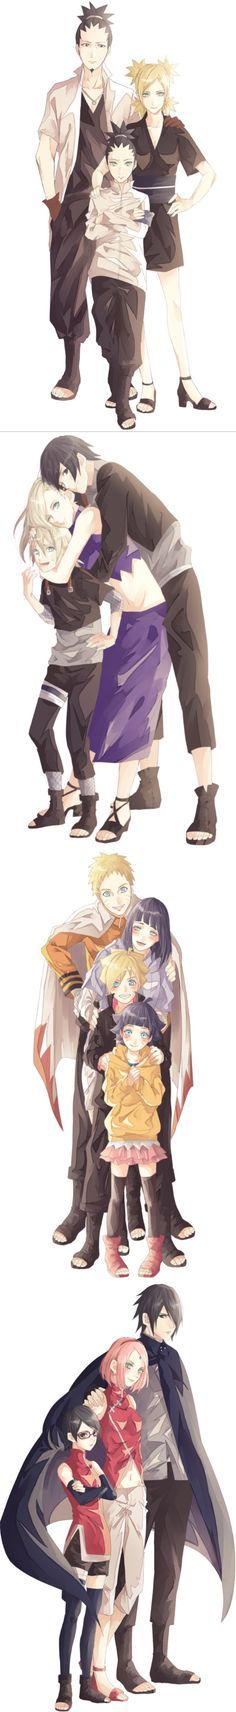 "The best part is that this artist draws every single one of them so in character. ShikaTema + Shikadai, SaiIno + Inojin, NaruHina + Boruto + Himawari, SasuSaku + Sarada <a class=""pintag"" href=""/explore/naruto/"" title=""#naruto explore Pinterest"">#naruto</a>"